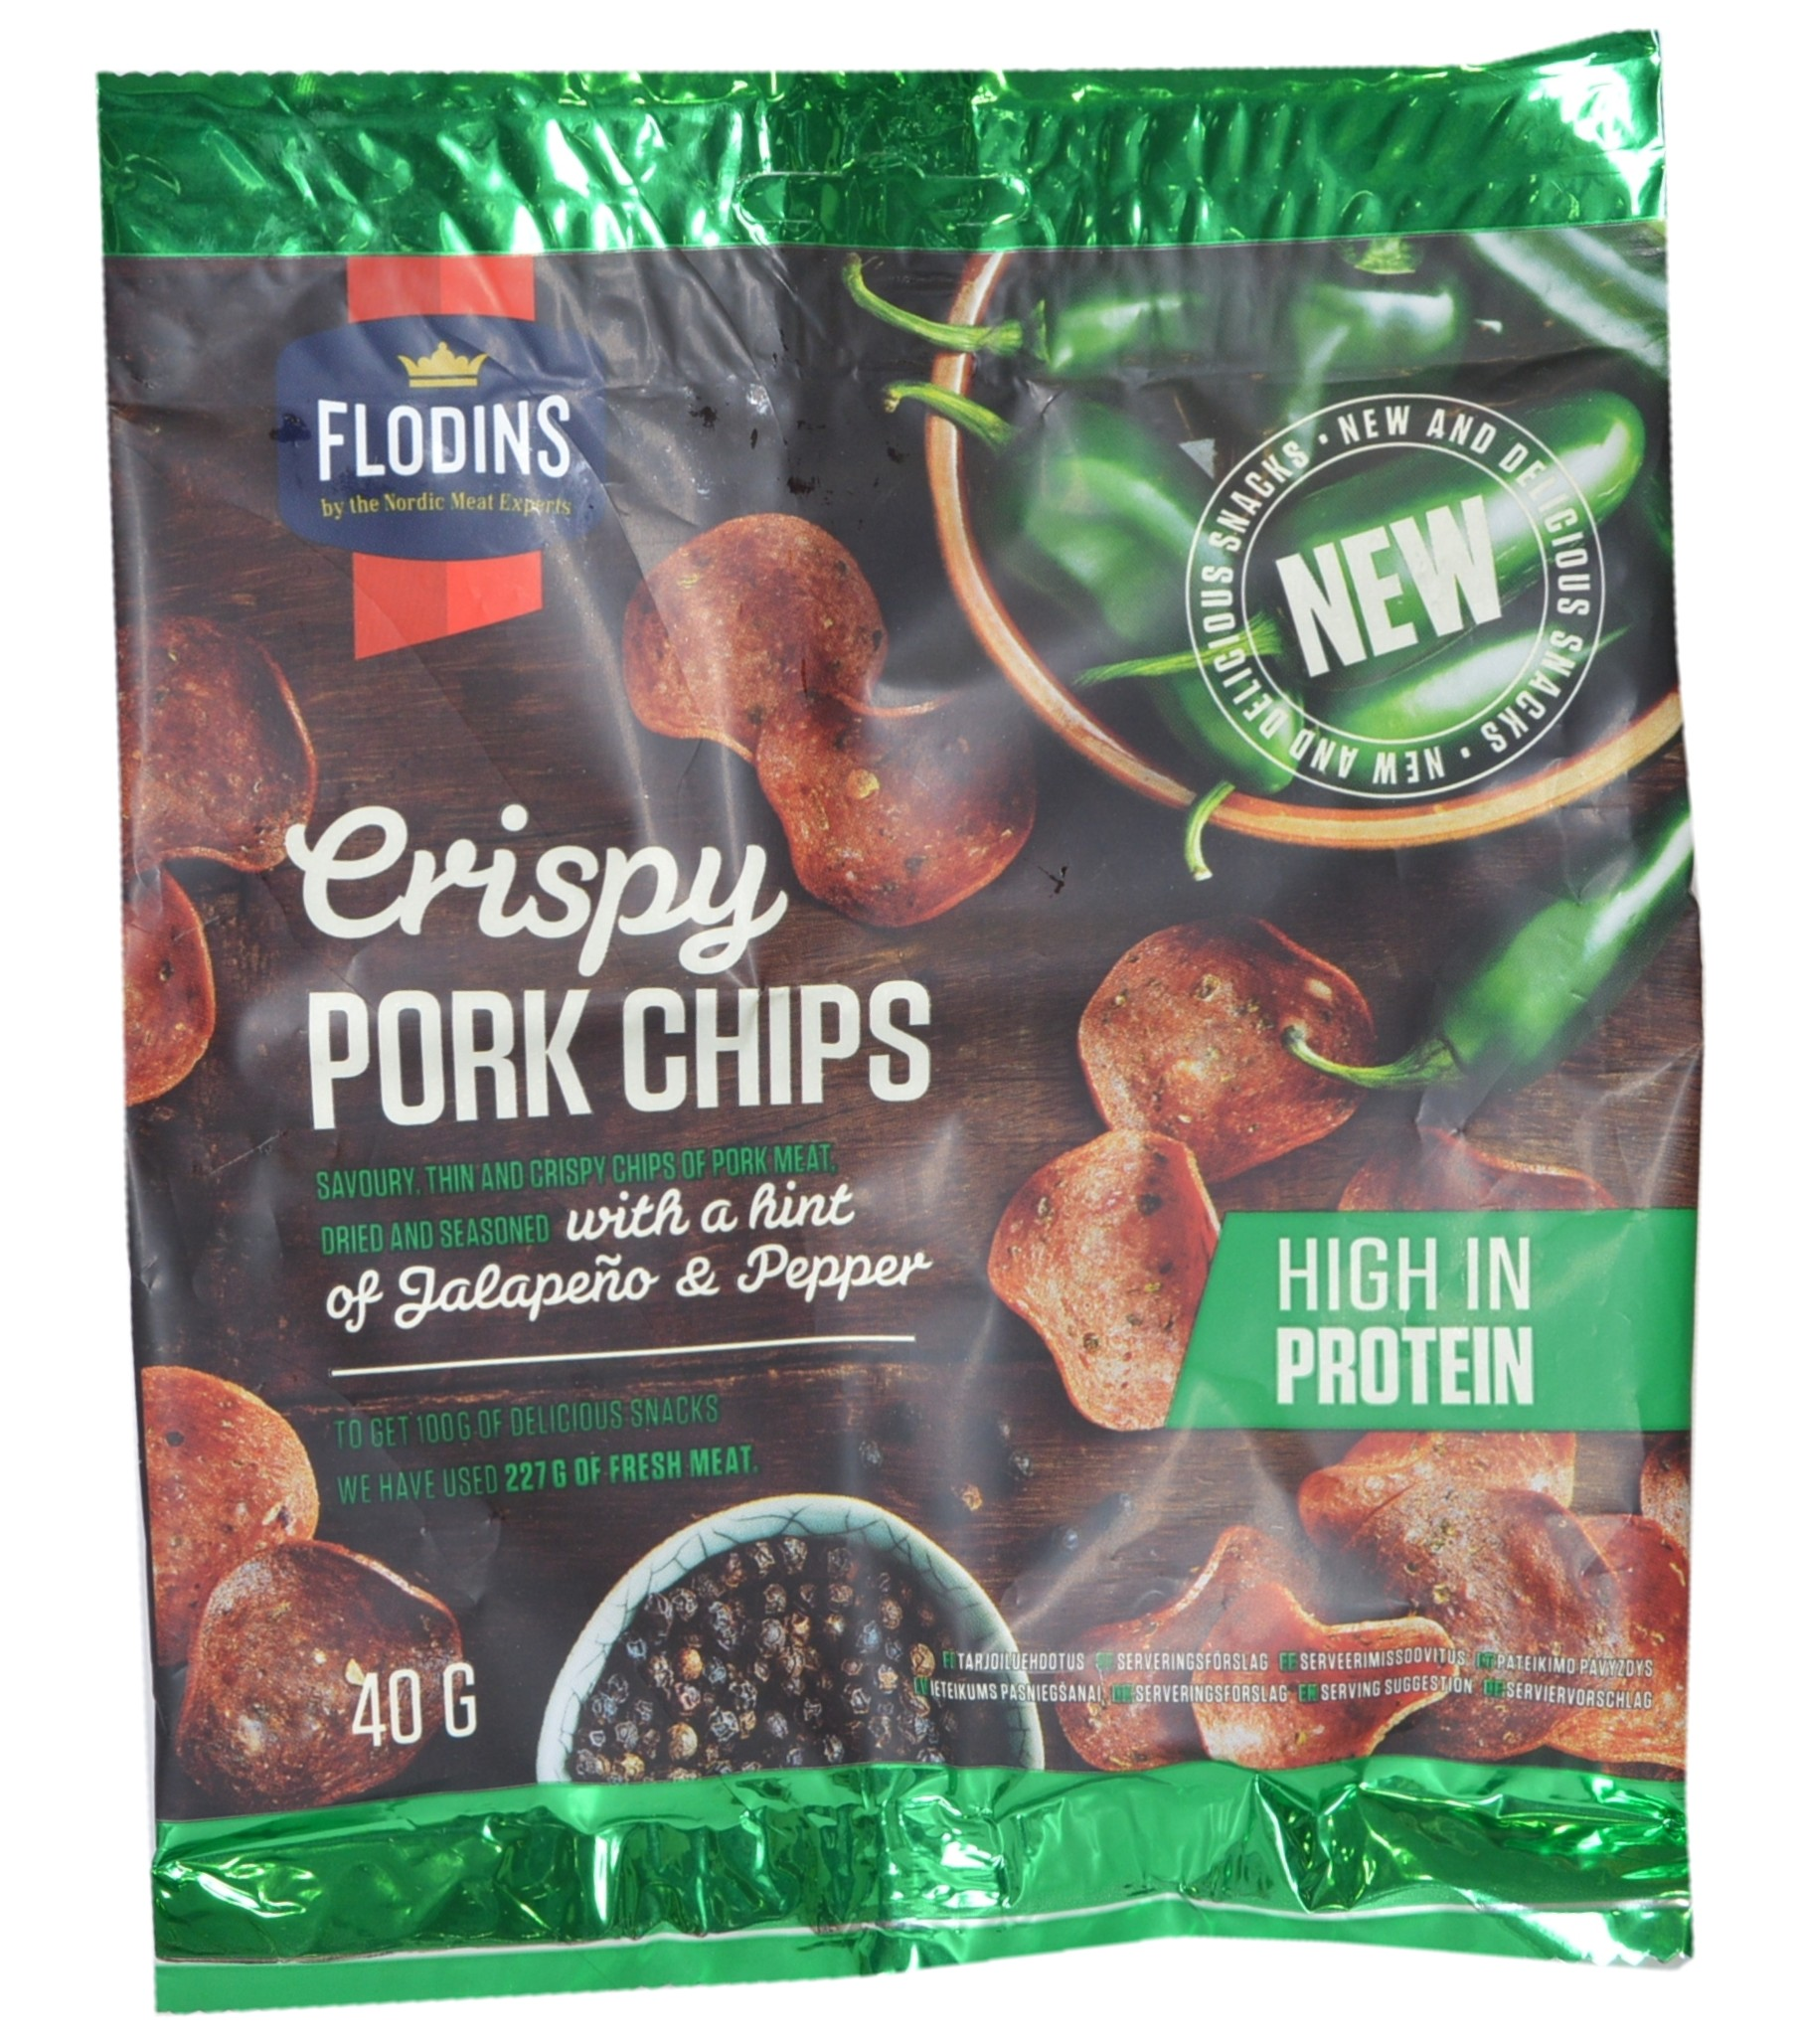 Crispy Pork Chips with a Hint of Jalapeno and Pepper